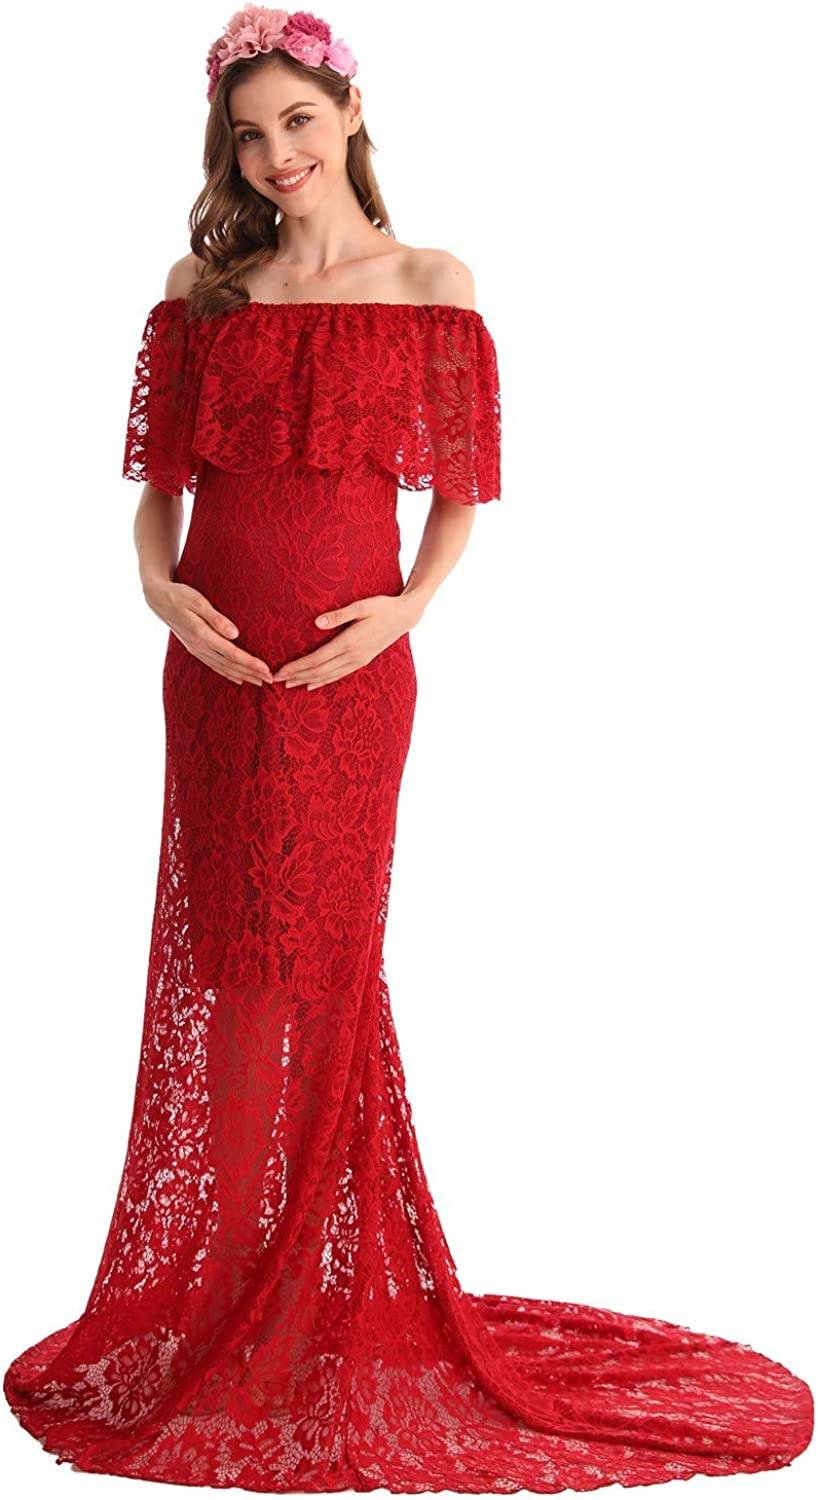 Myrisam Women Off The Shoulder Lace Maternity Dress Wedding Evening Baby Shower Dress Maxi Photography Gown With Train At Amazon Women S Clothing Store